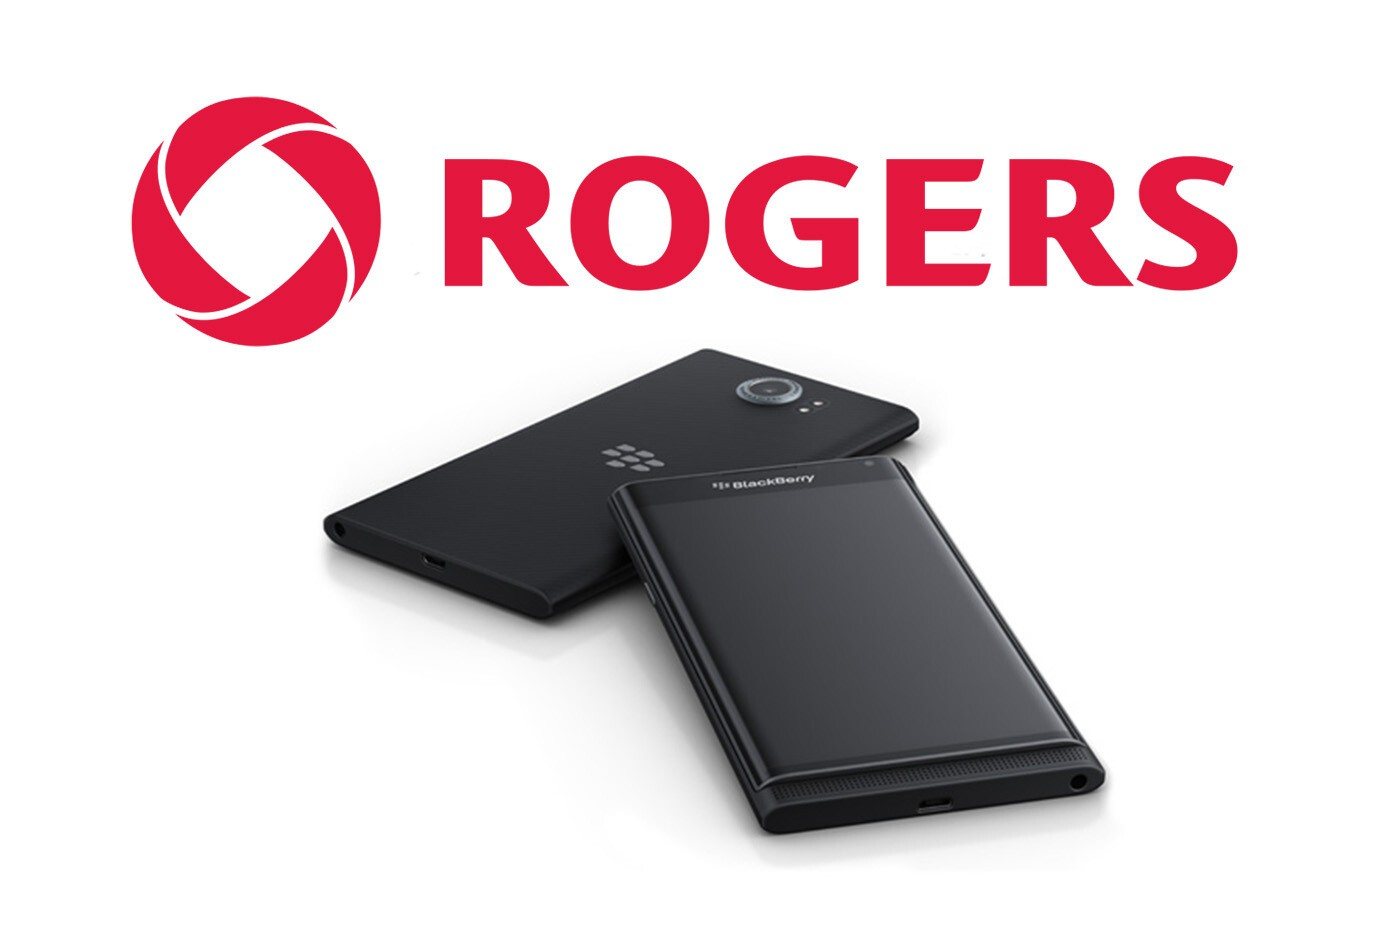 Priv by BlackBerry pre-orders now available through Rogers reservation system